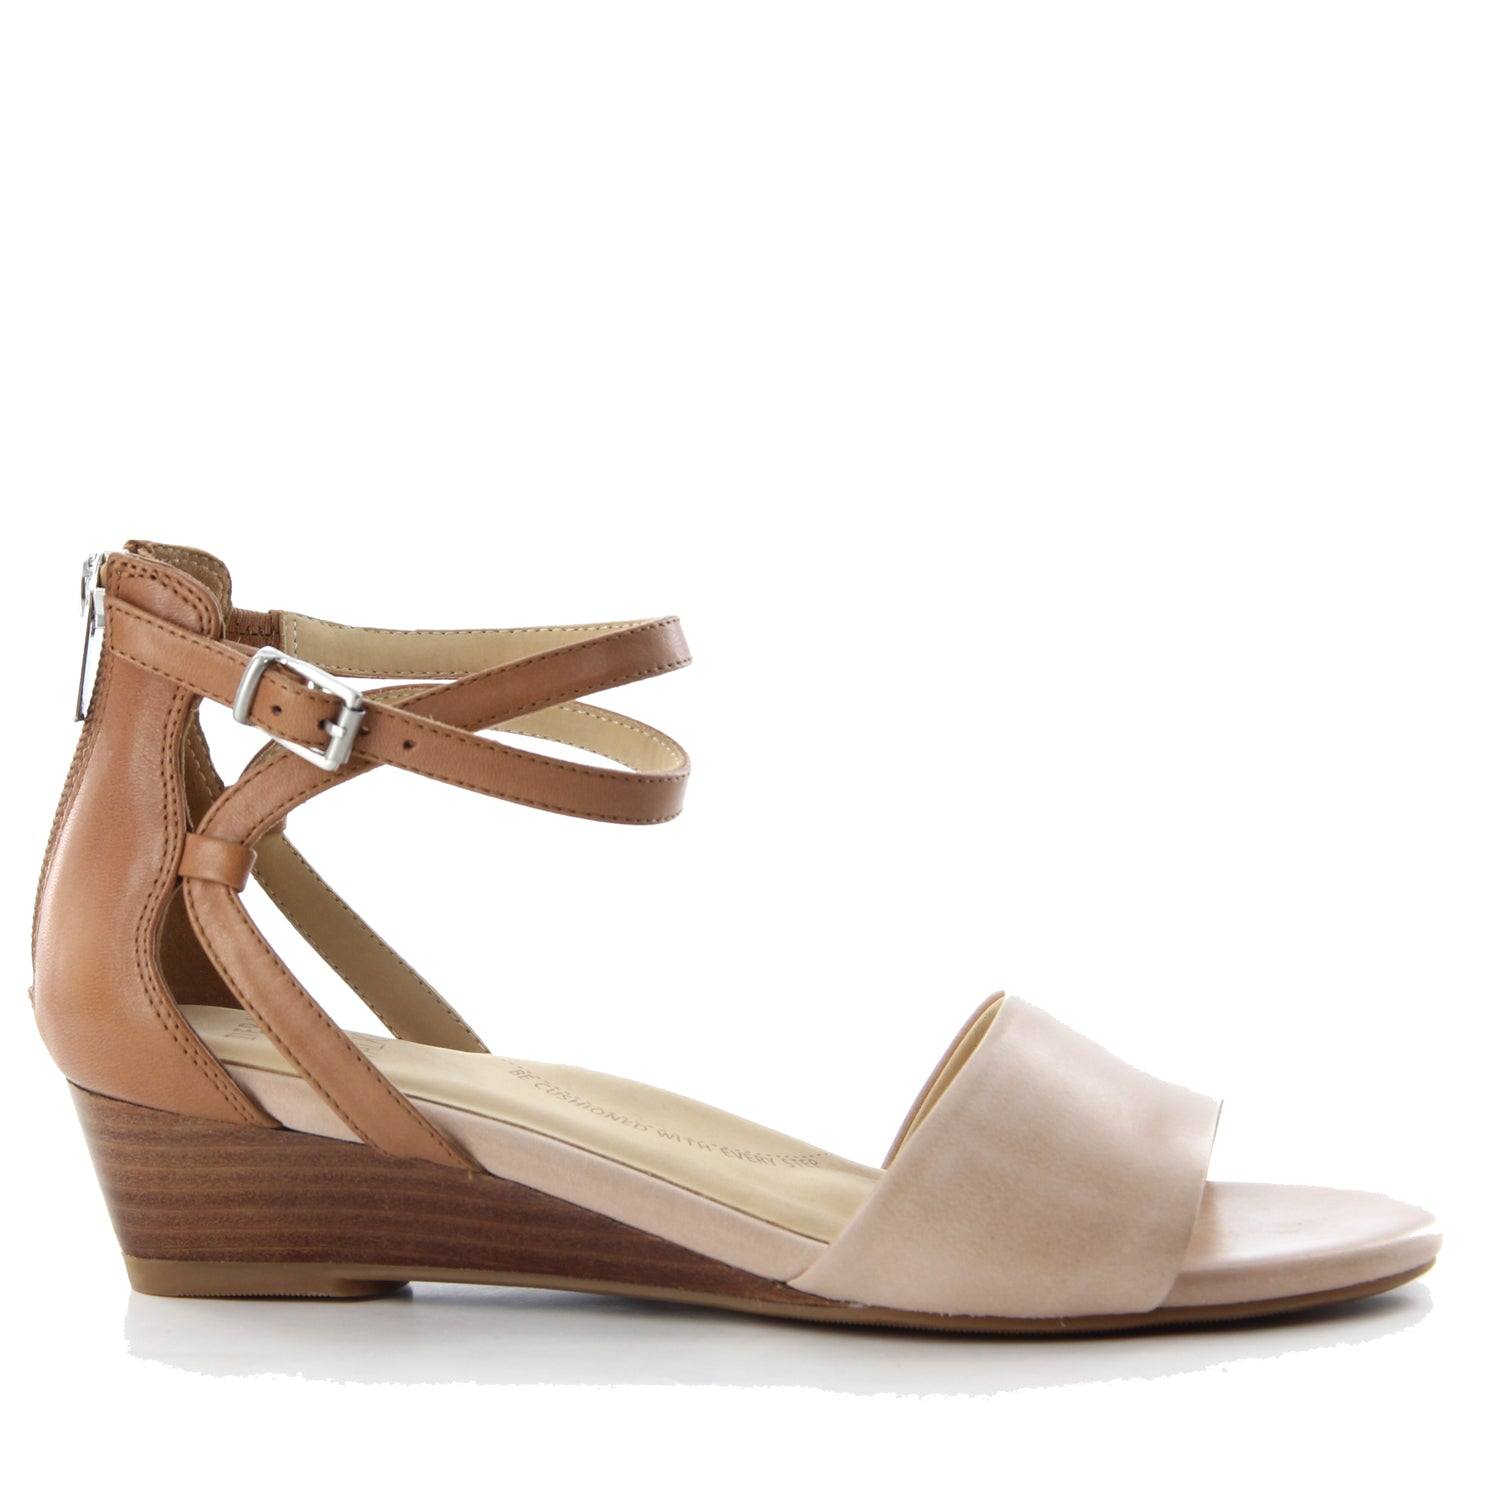 KALANI W - BLUSH LIGHT TAN